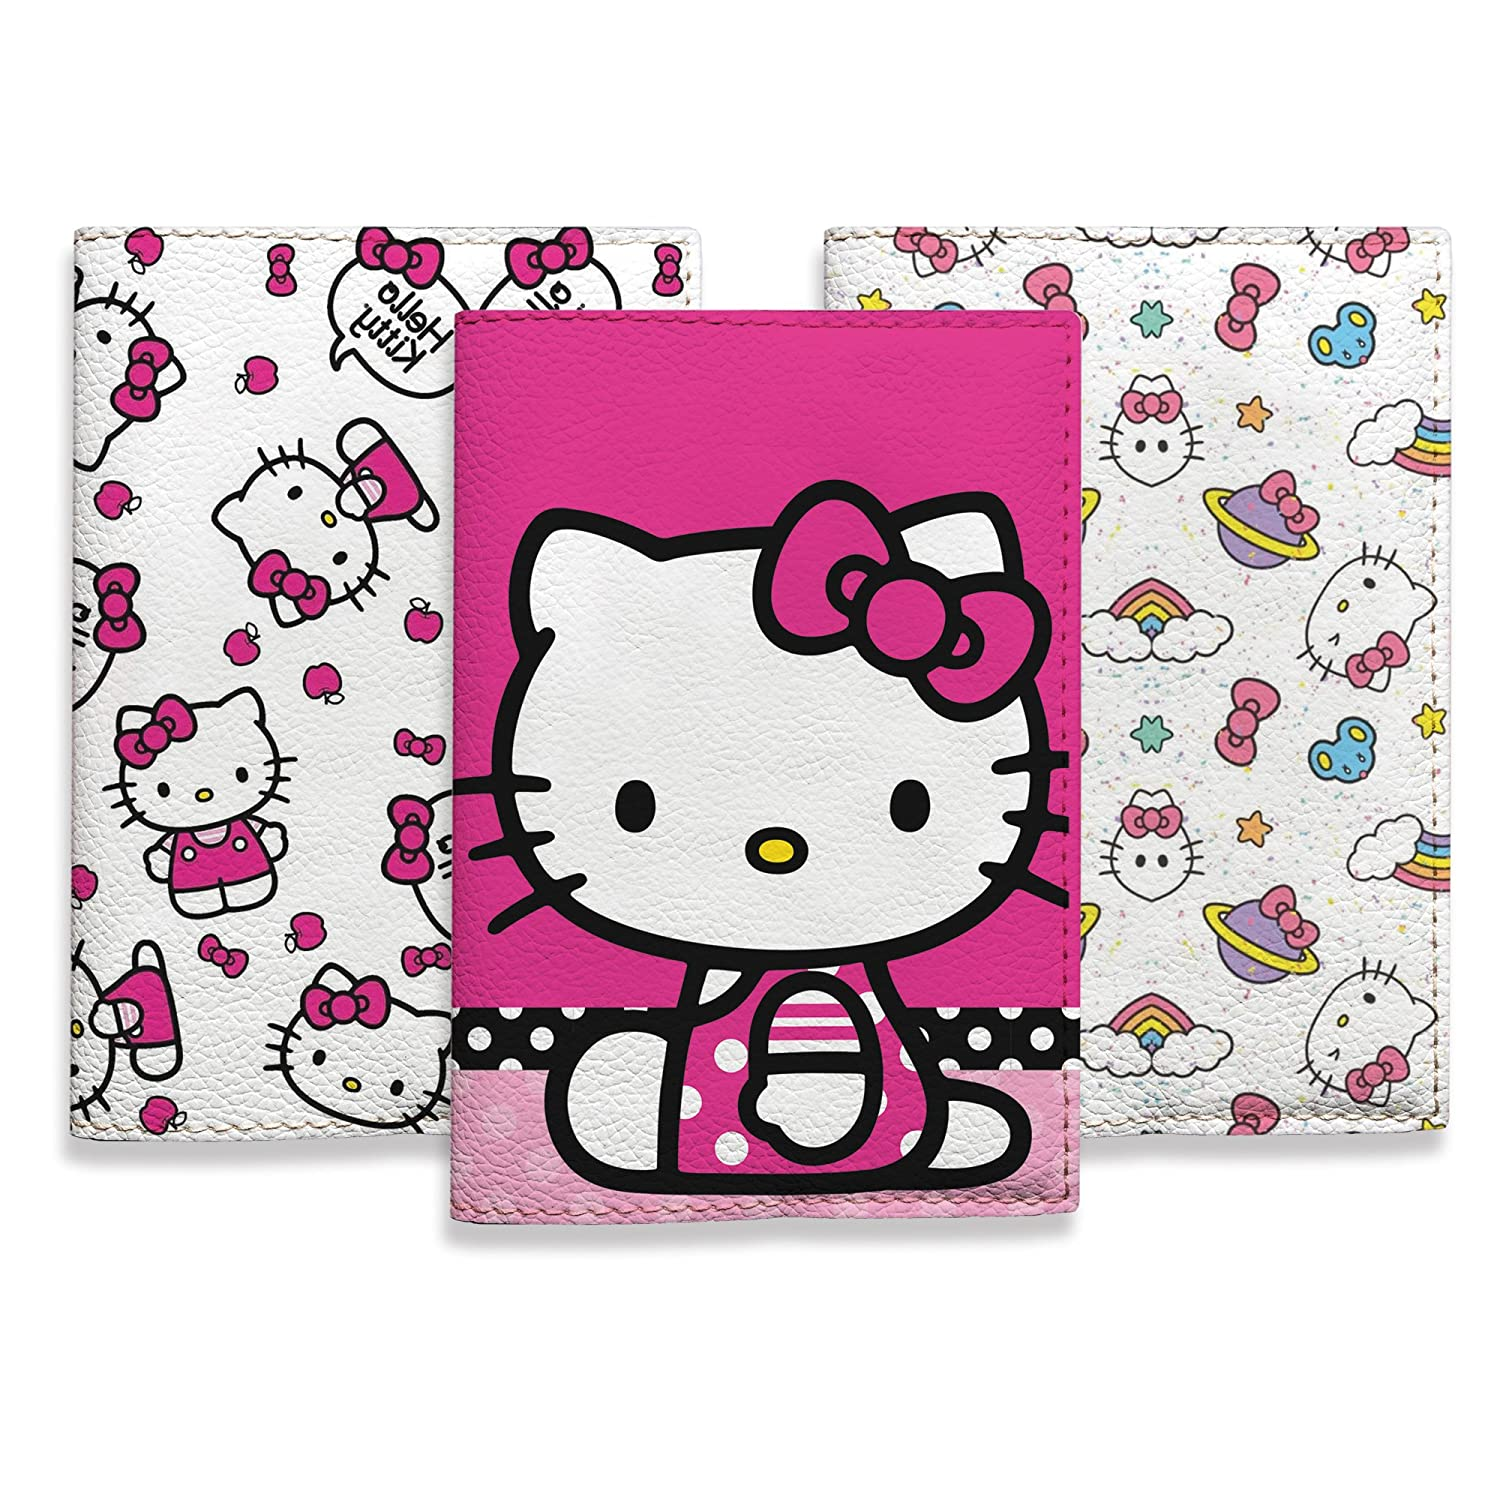 Kitty passport covers for women and girls travel ID holder eco leather